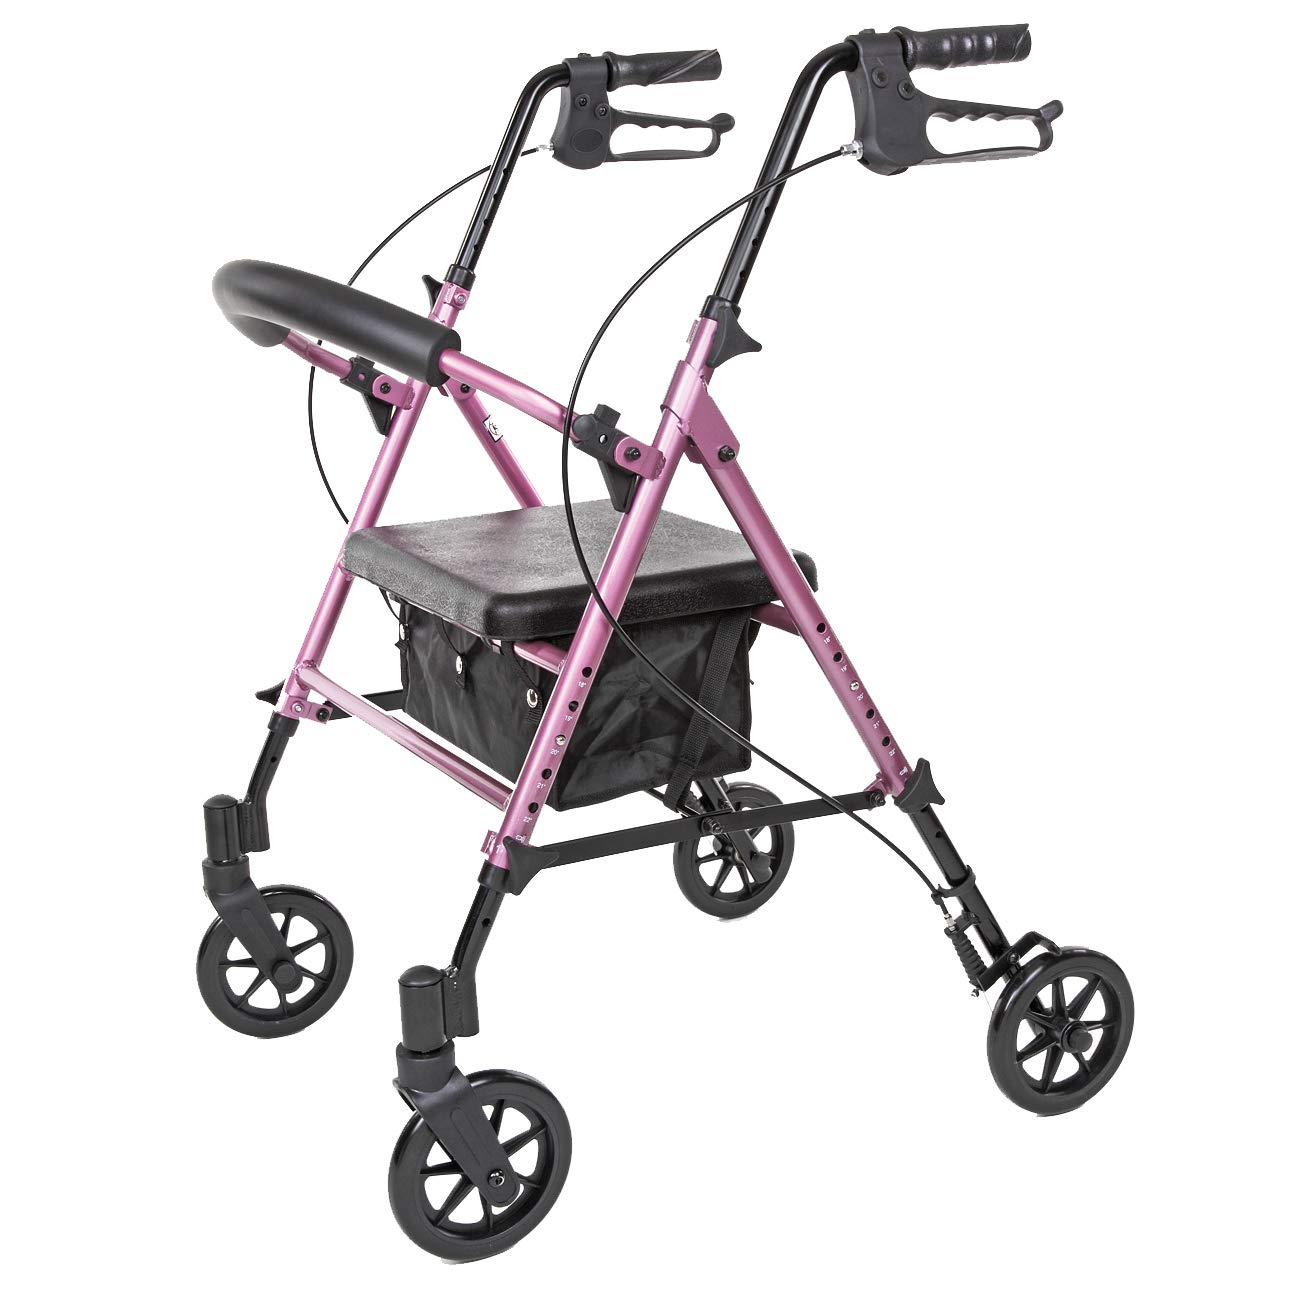 Carex Step 'N Rest Aluminum Rolling Walker For Seniors, Pink - Rollator Walker With Seat -  With Back Support, 6 Inch Wheels, 250lbs Support, Lightweight by Carex